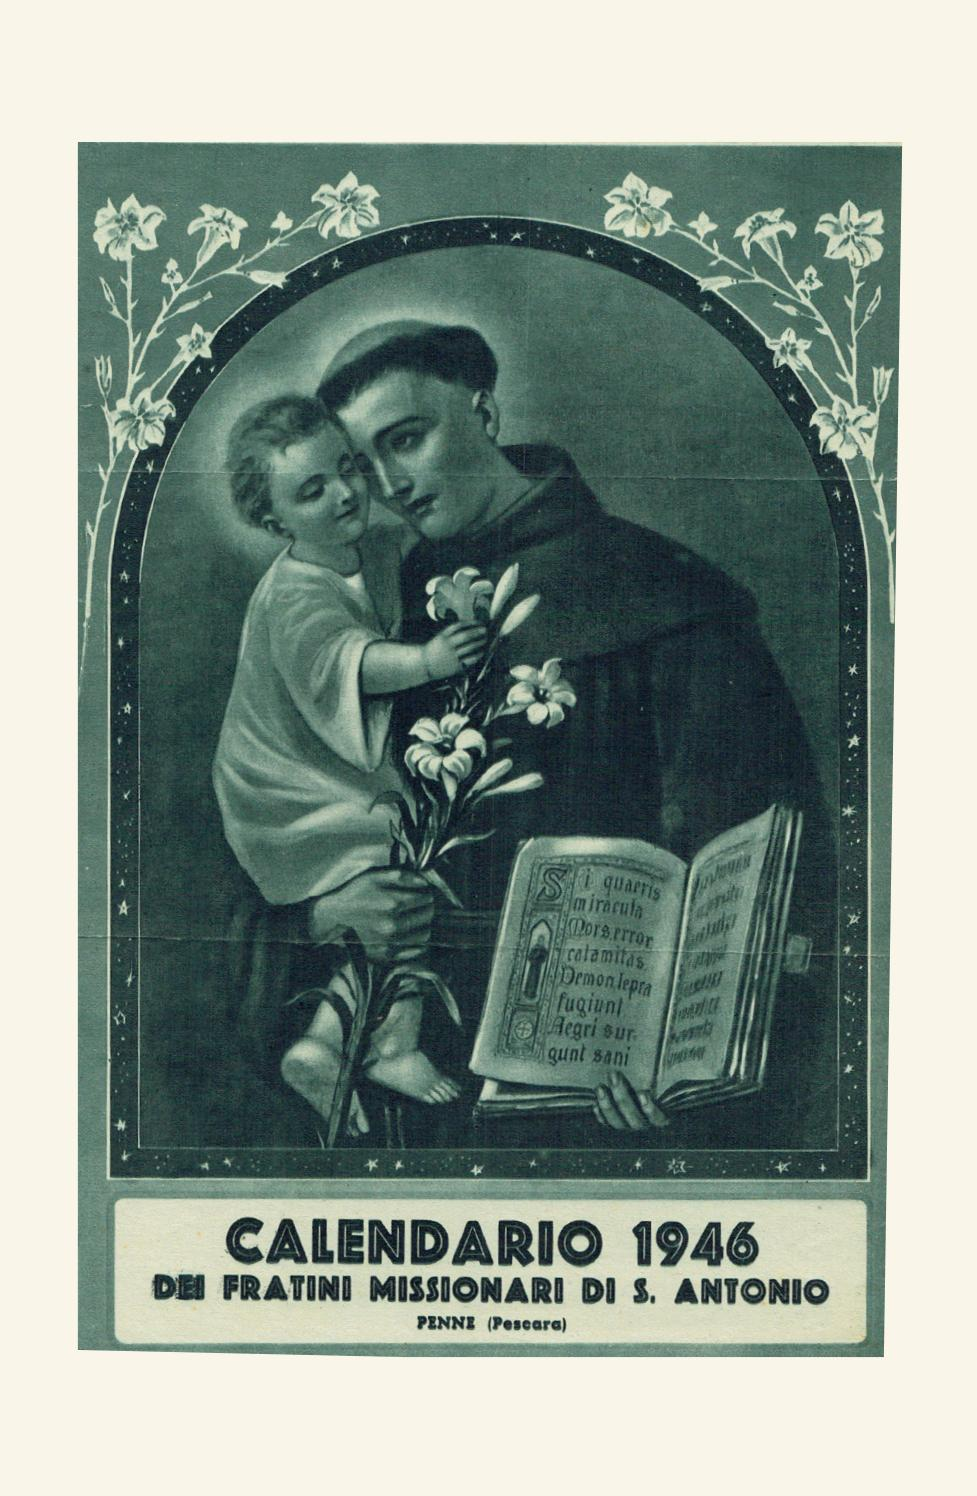 Calendario 1946.Voce Serafica Calendario 1946 By Padreurbano Issuu